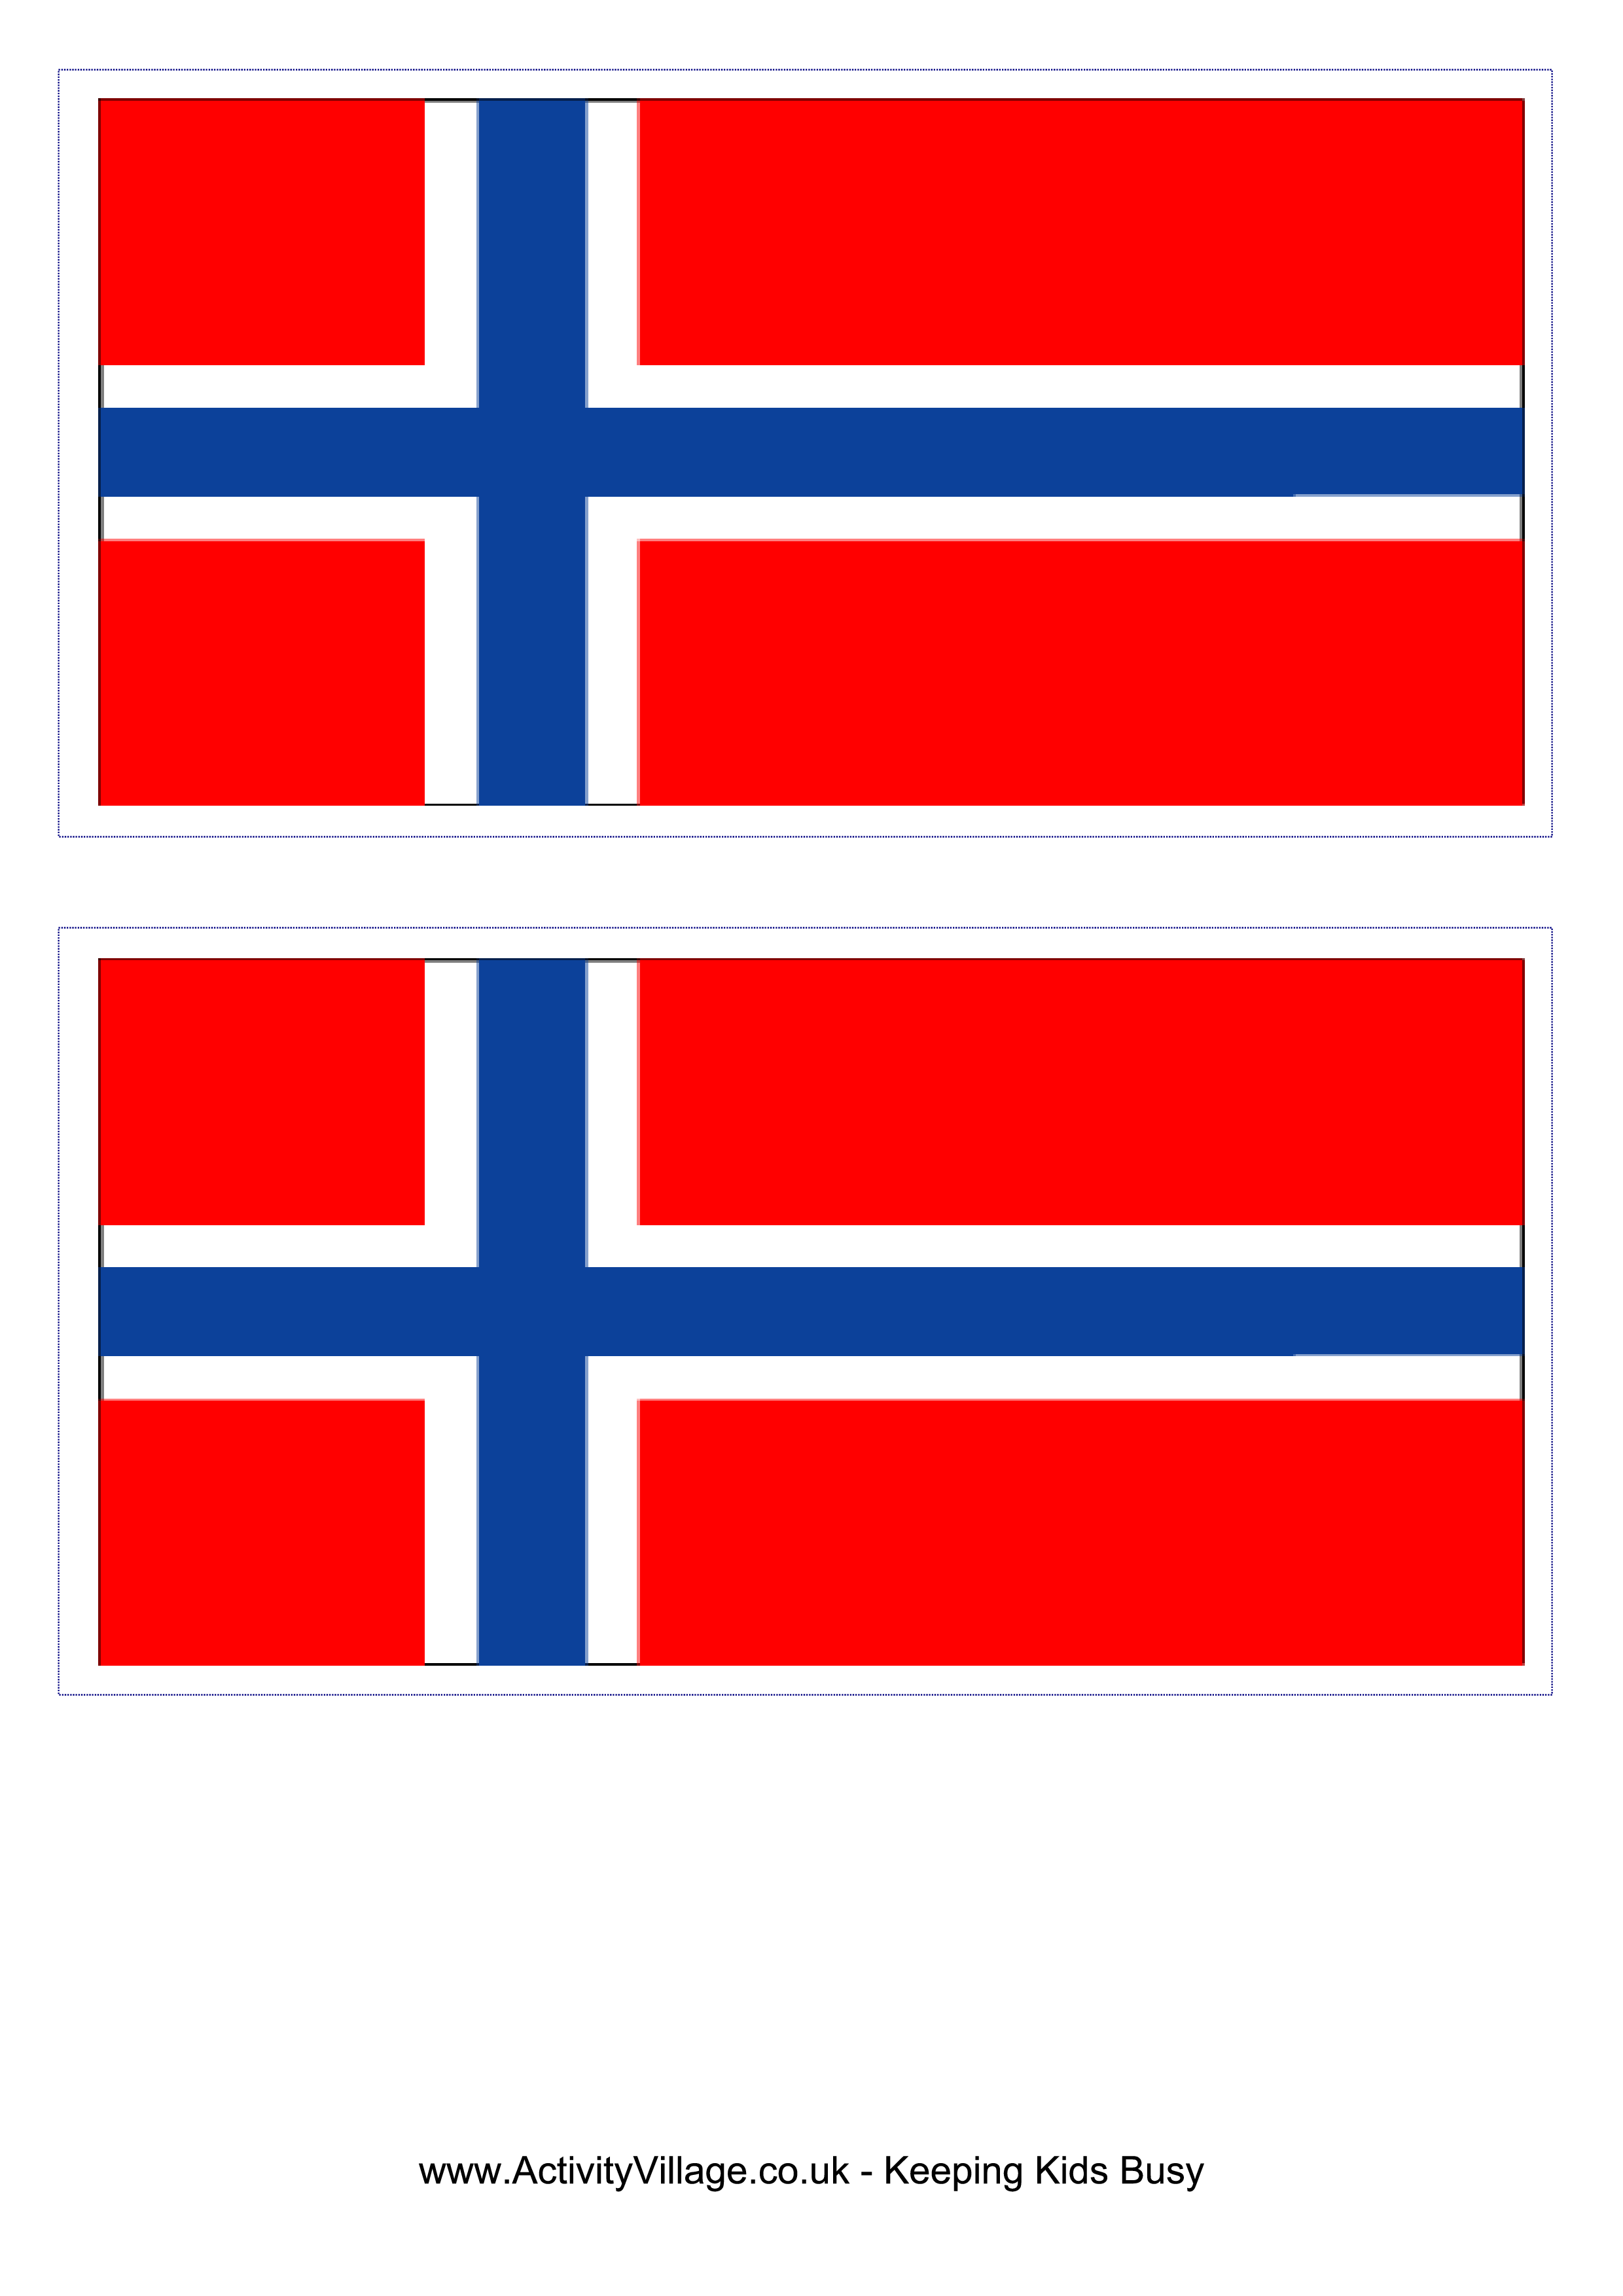 Norwegian Flag Download This Free Printable Norwegian Template A4 Flag A5 Flag 8 And 21 Flags On One A4page Easy Flag Printable Norwegian Flag Norway Flag